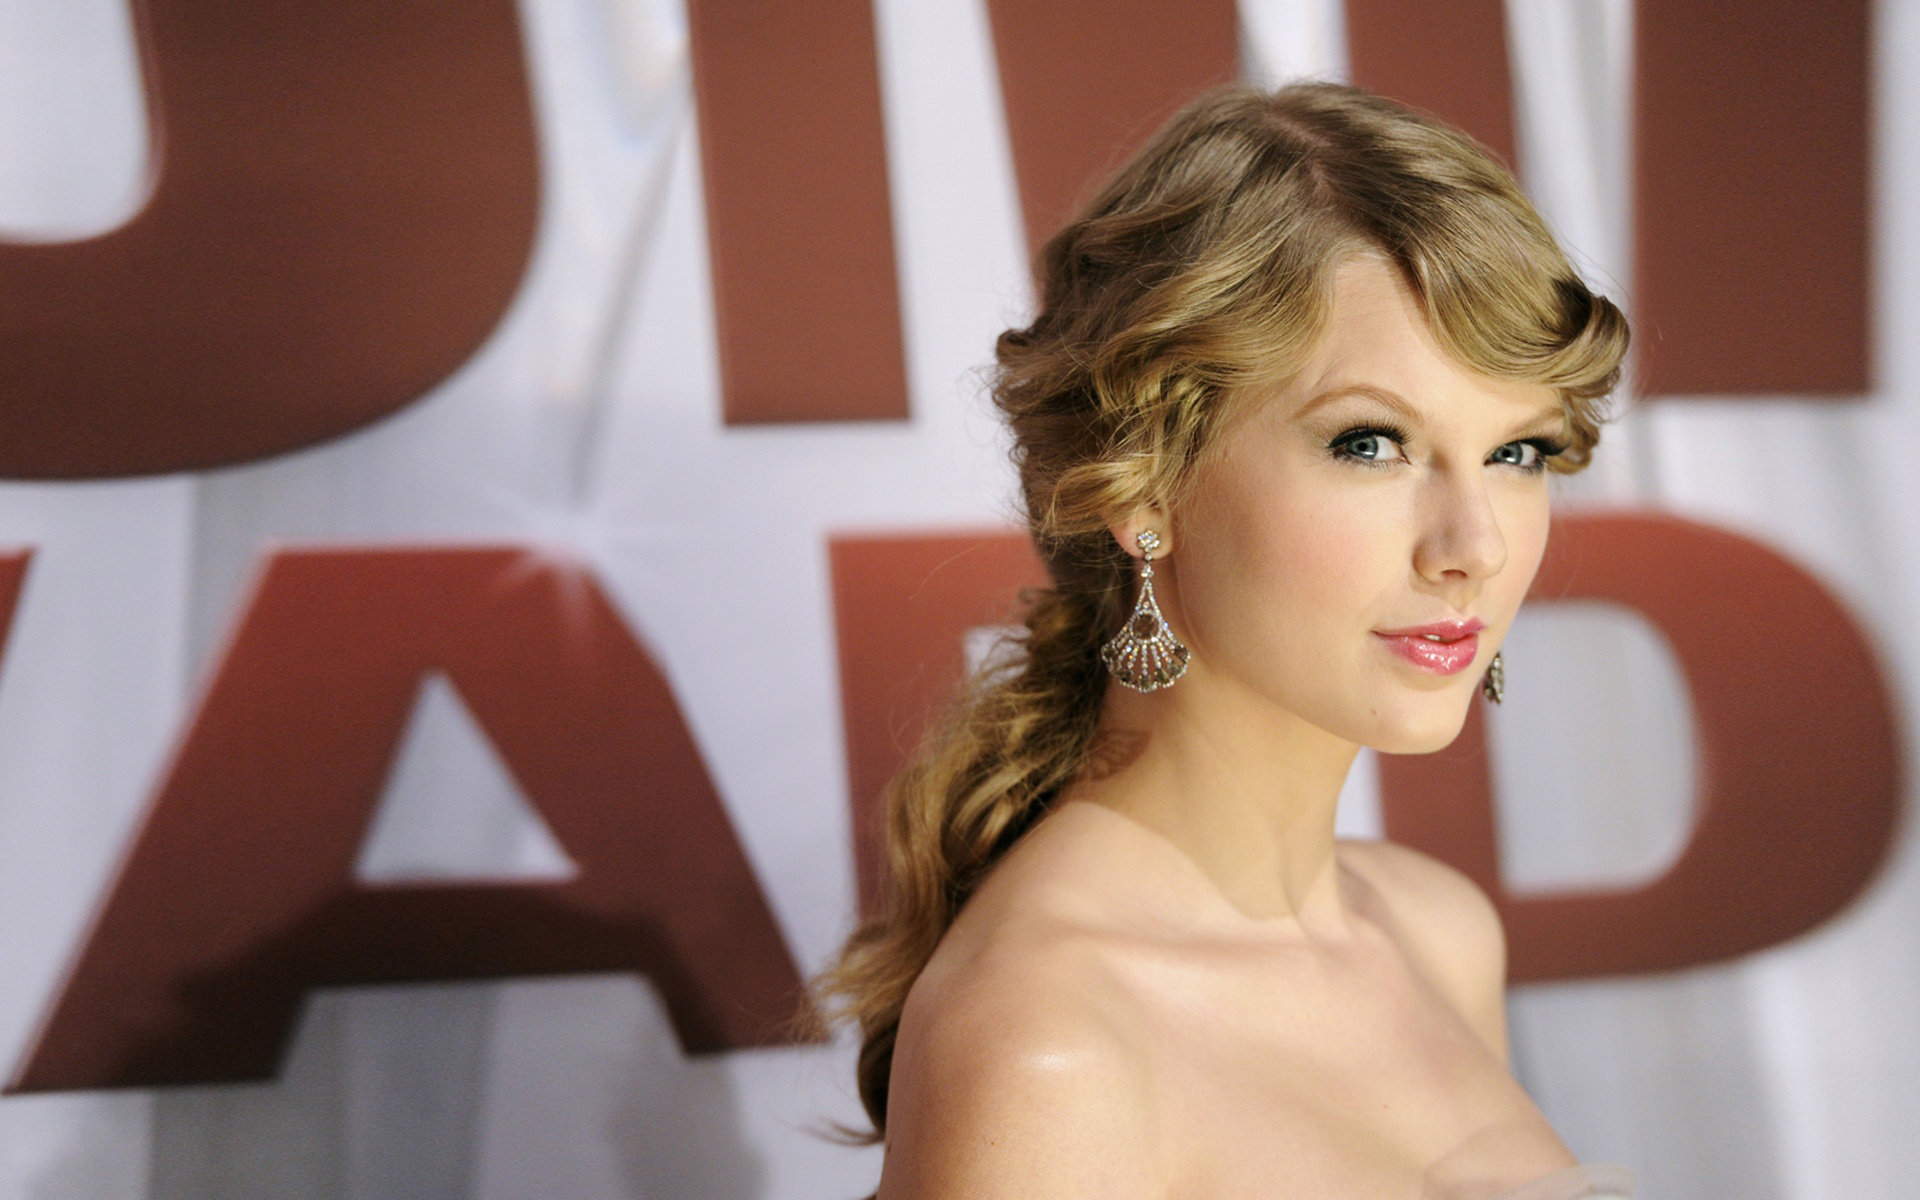 Country Music Stars Wallpaper: Free Wallpaper Of Country Music Artist-Taylor Swift